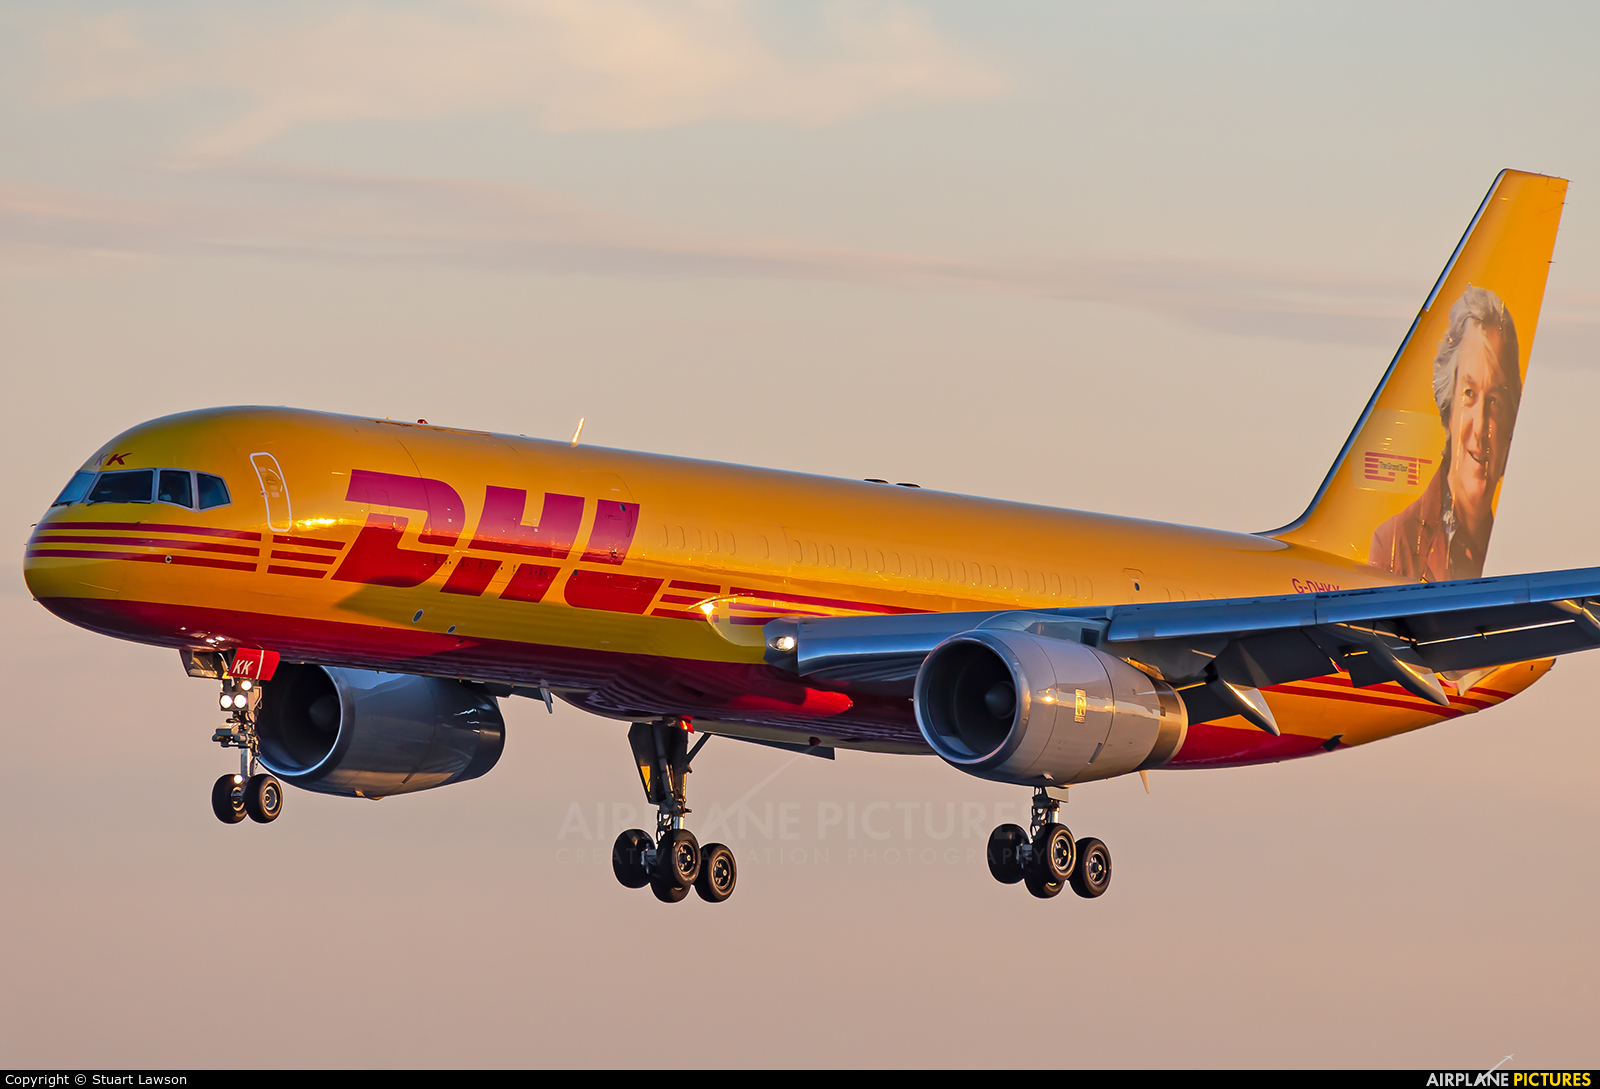 DHL Cargo G-DHKK aircraft at East Midlands